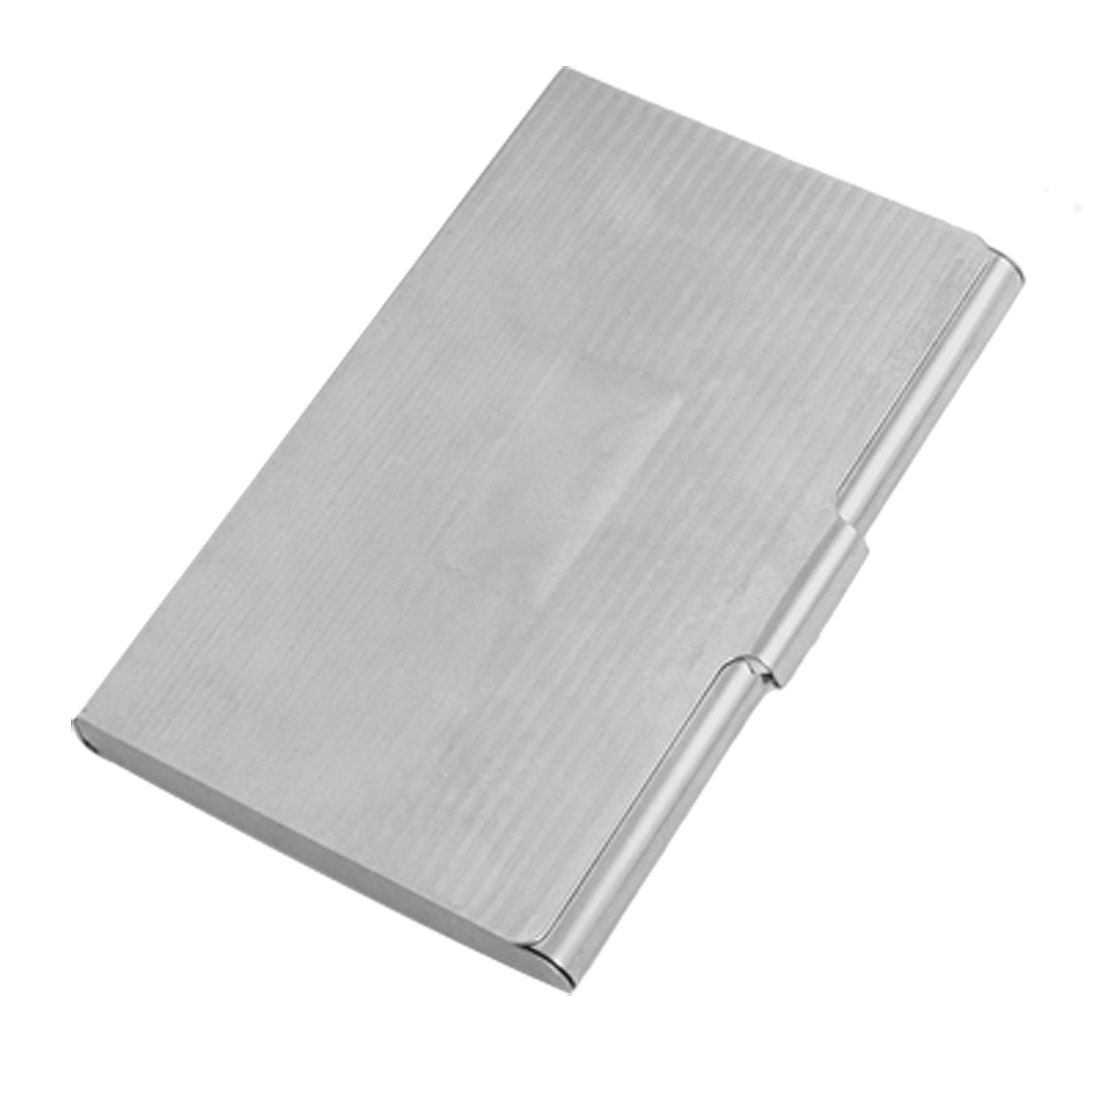 Silver Tone Stainless Steel Business Credit Card Holder Case